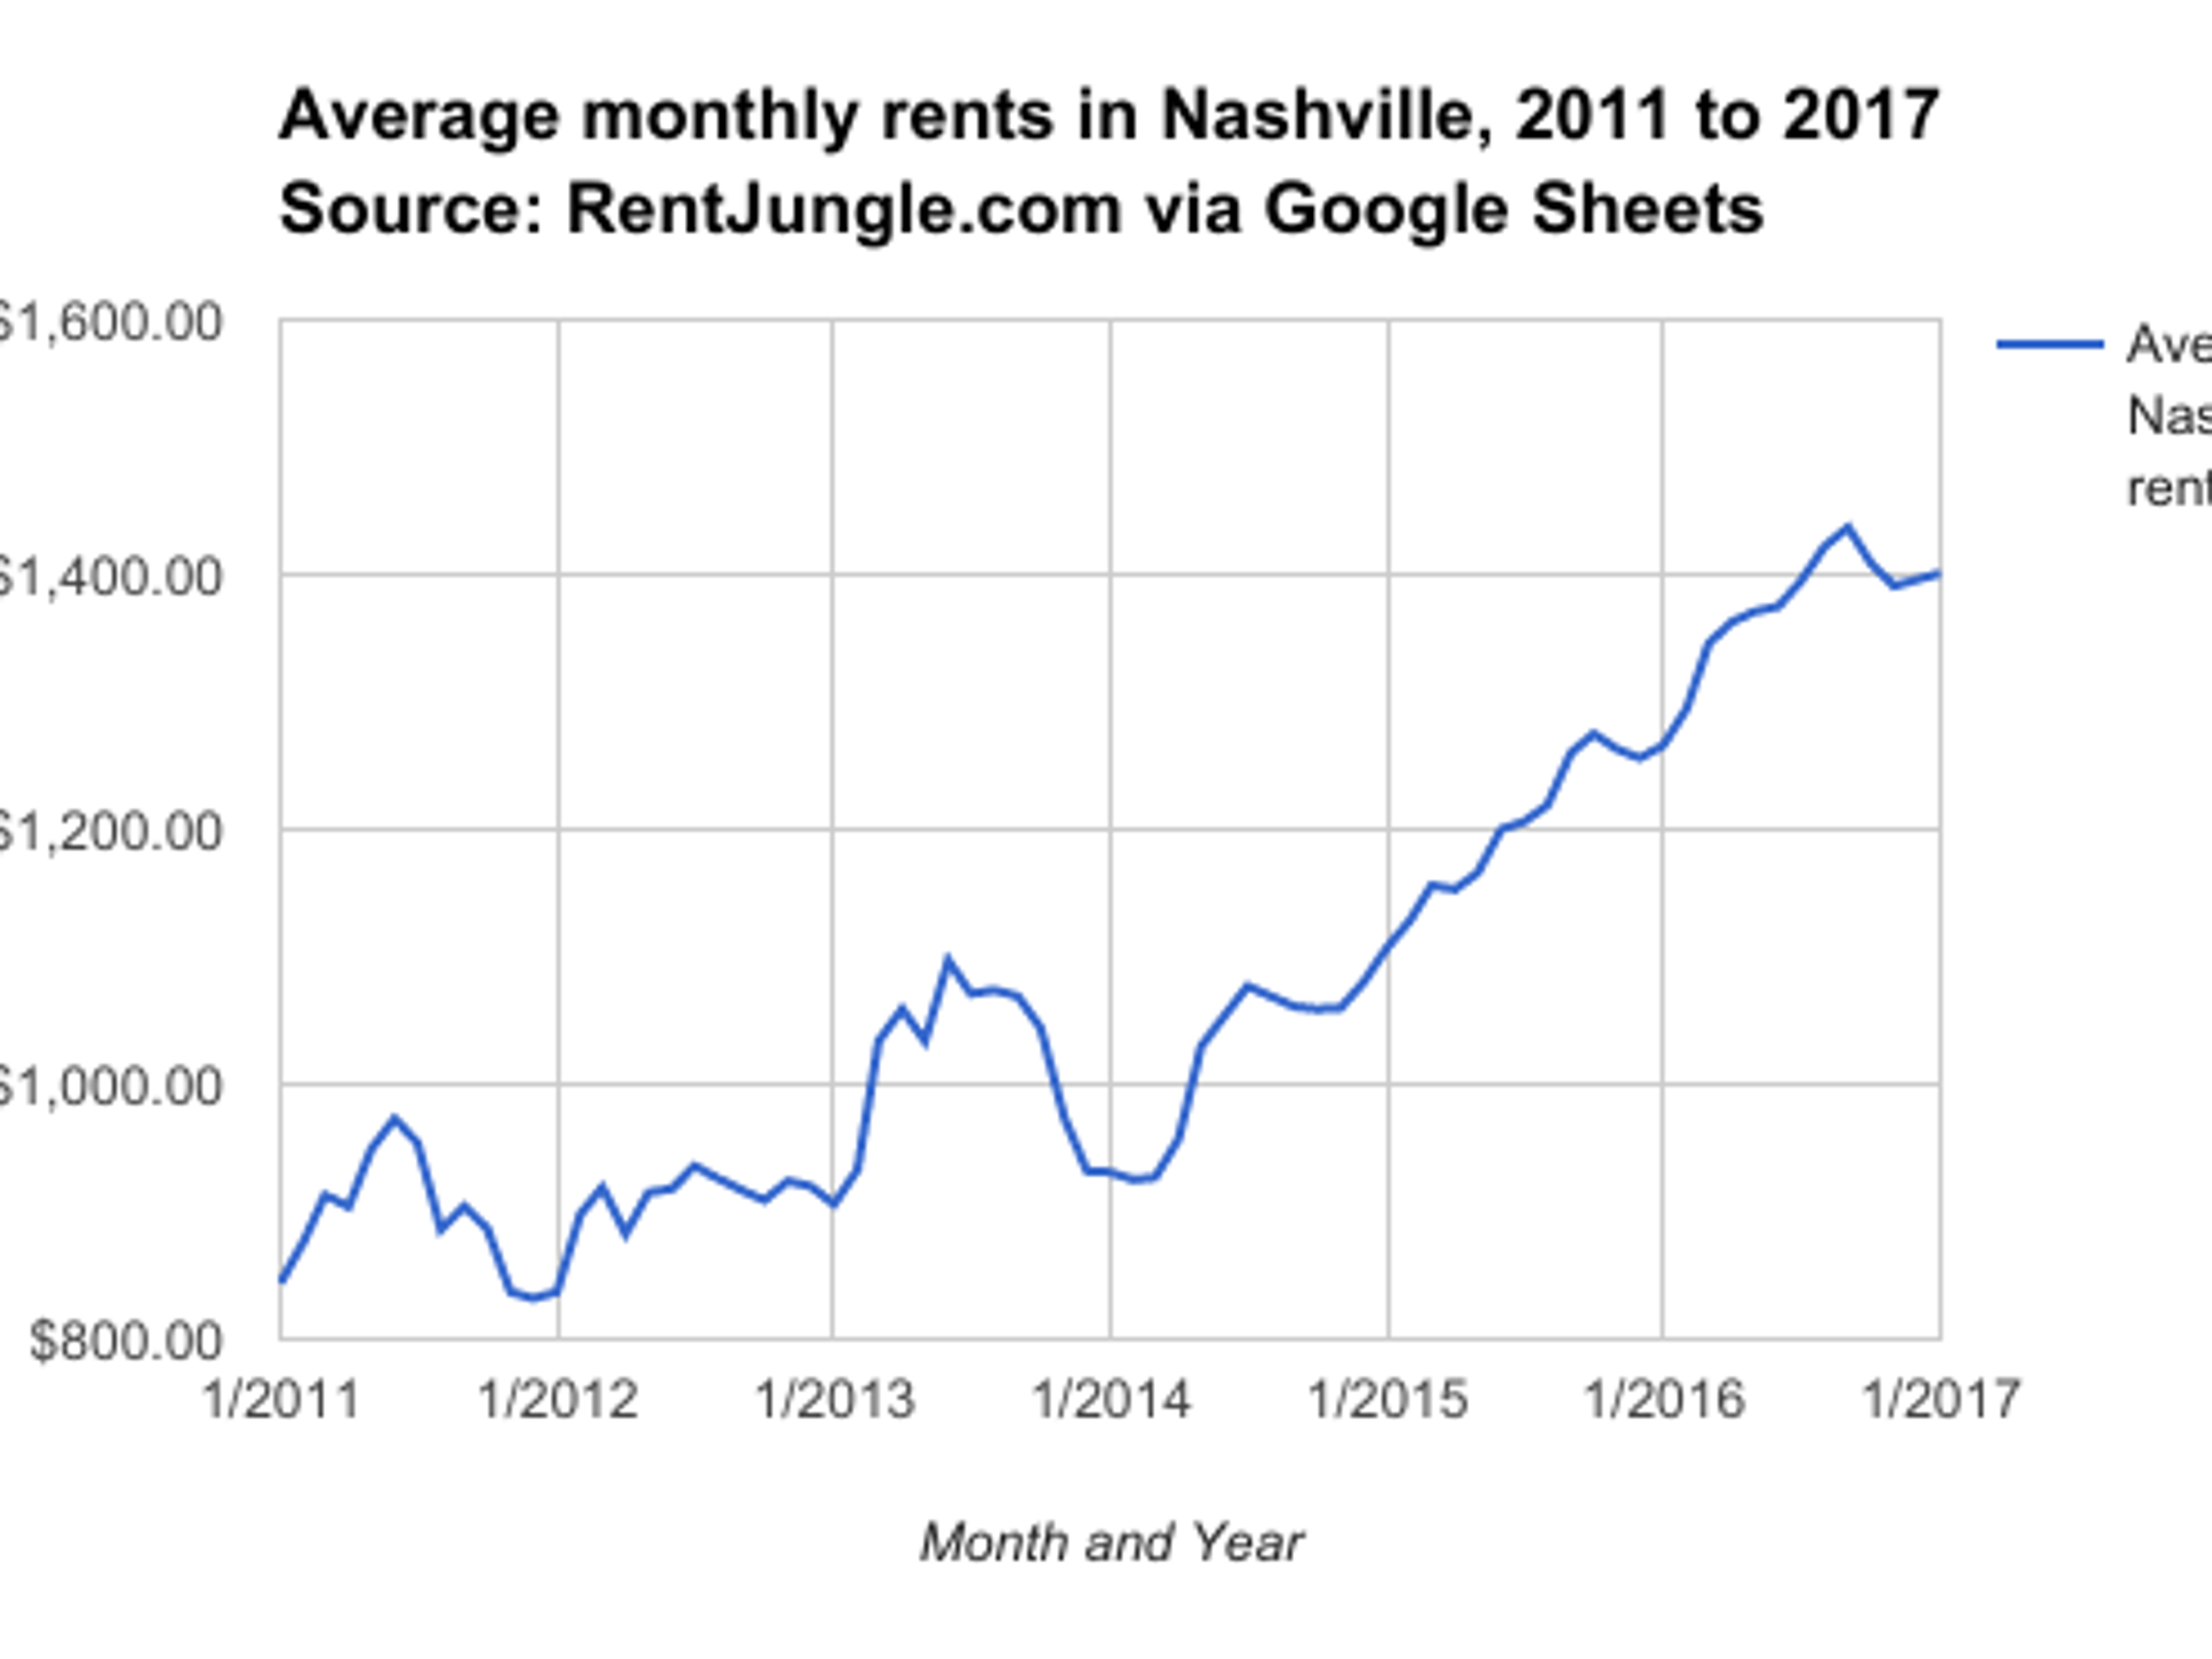 Average monthly rents in Nashville increased by more